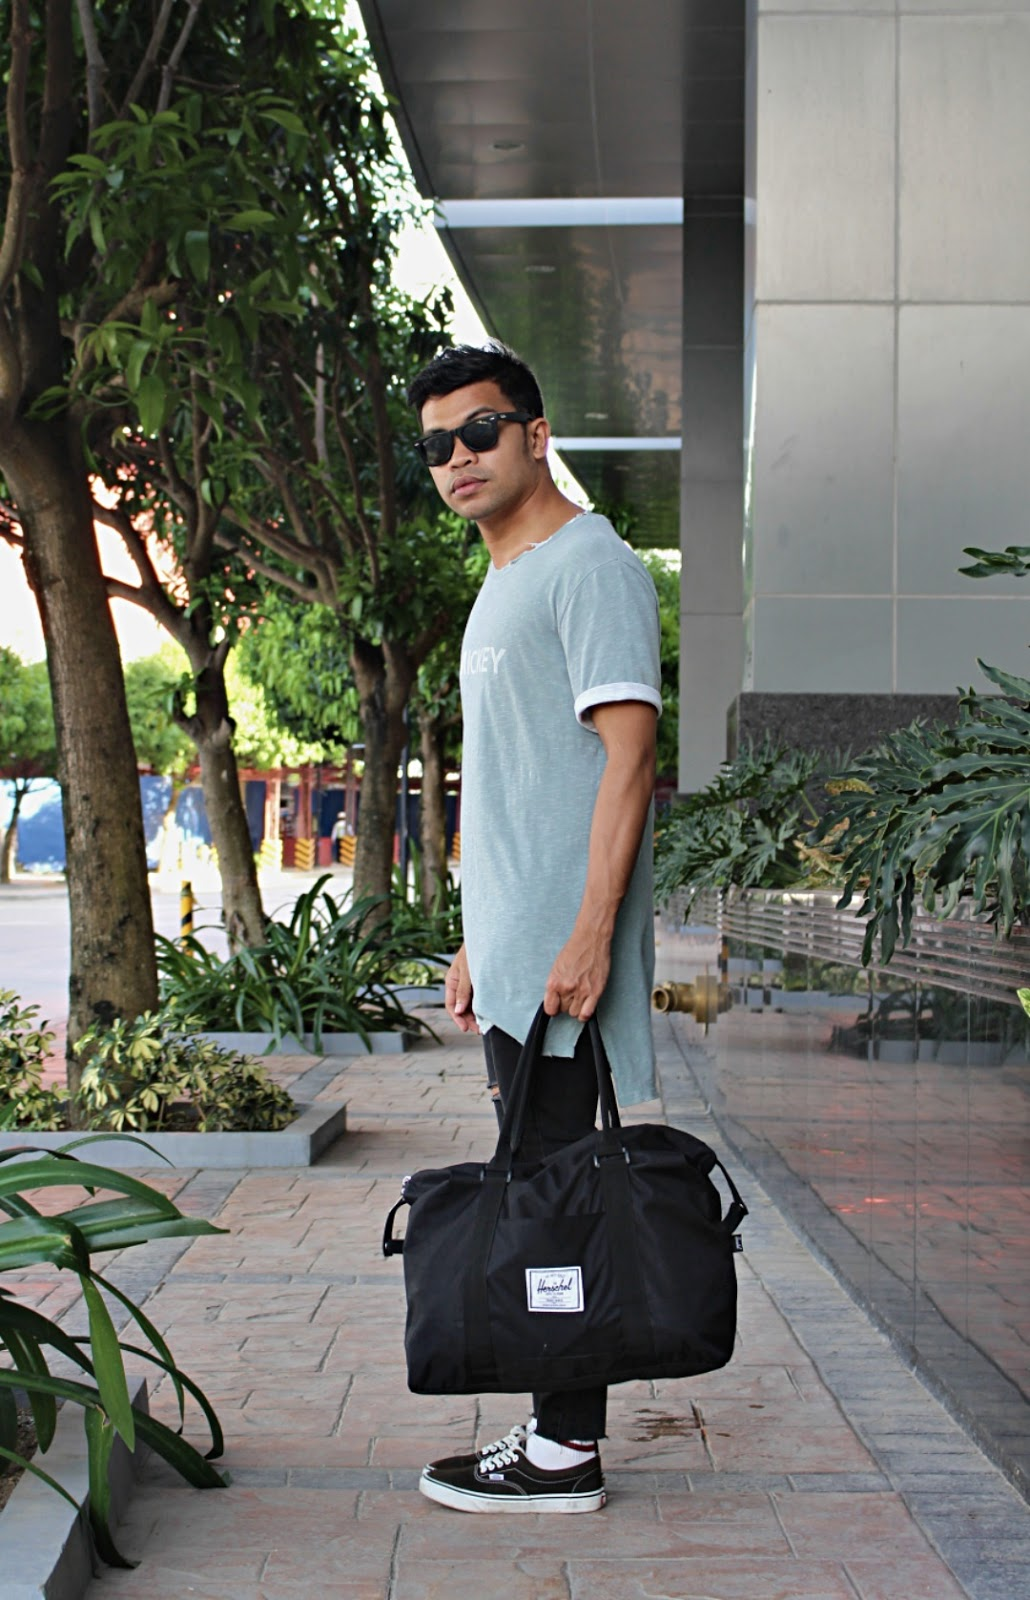 cebu-men-fashion-blogger-almostablogger-top.jpg